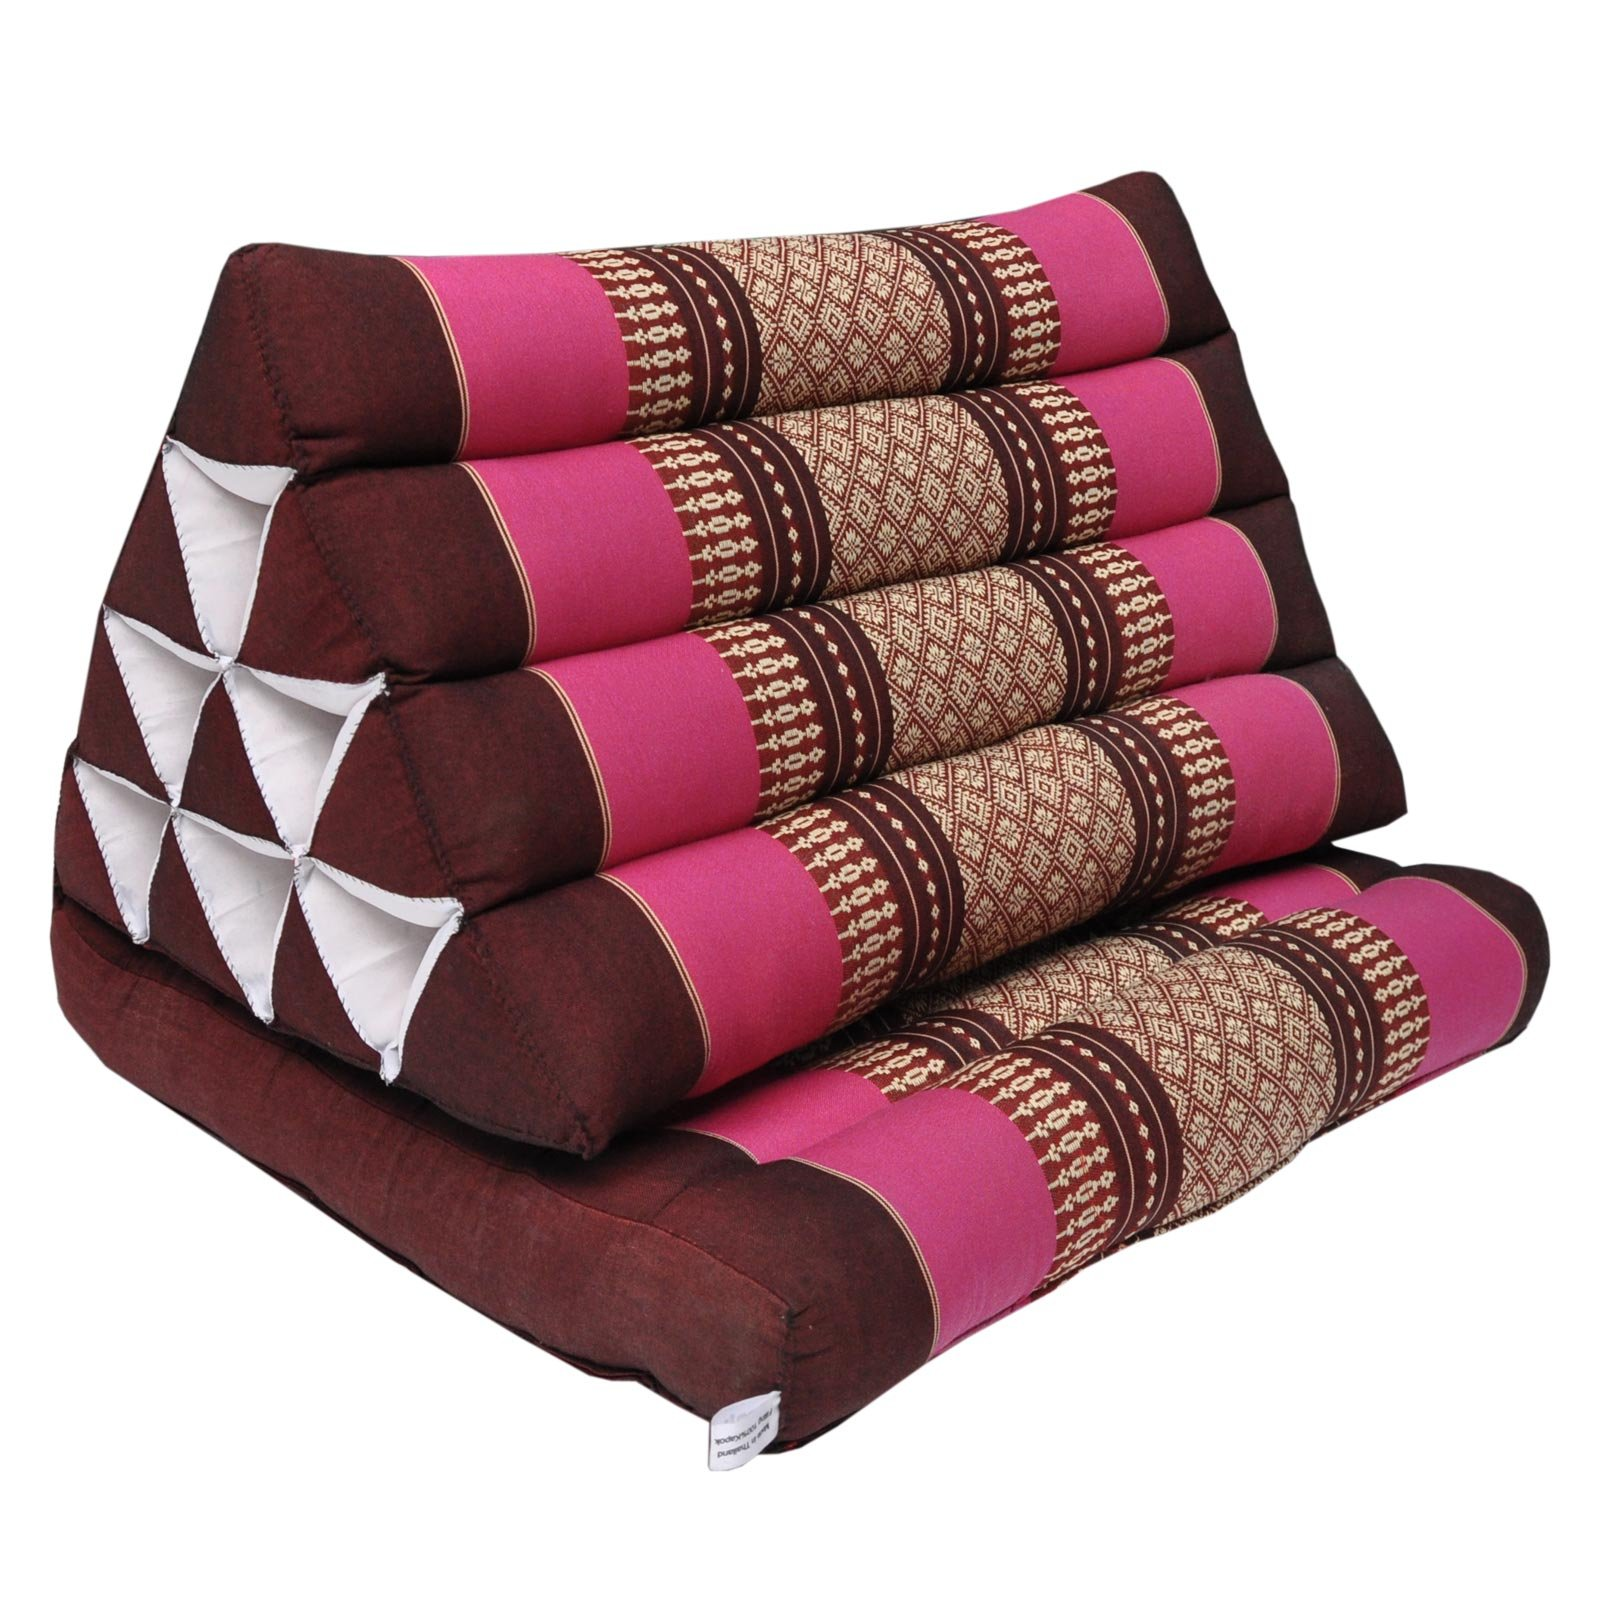 Thai triangle cushion with 1 folding seat, relaxation, beach, pool, meditation, yoga Bordeaux/Pink (81401) by Wilai GmbH